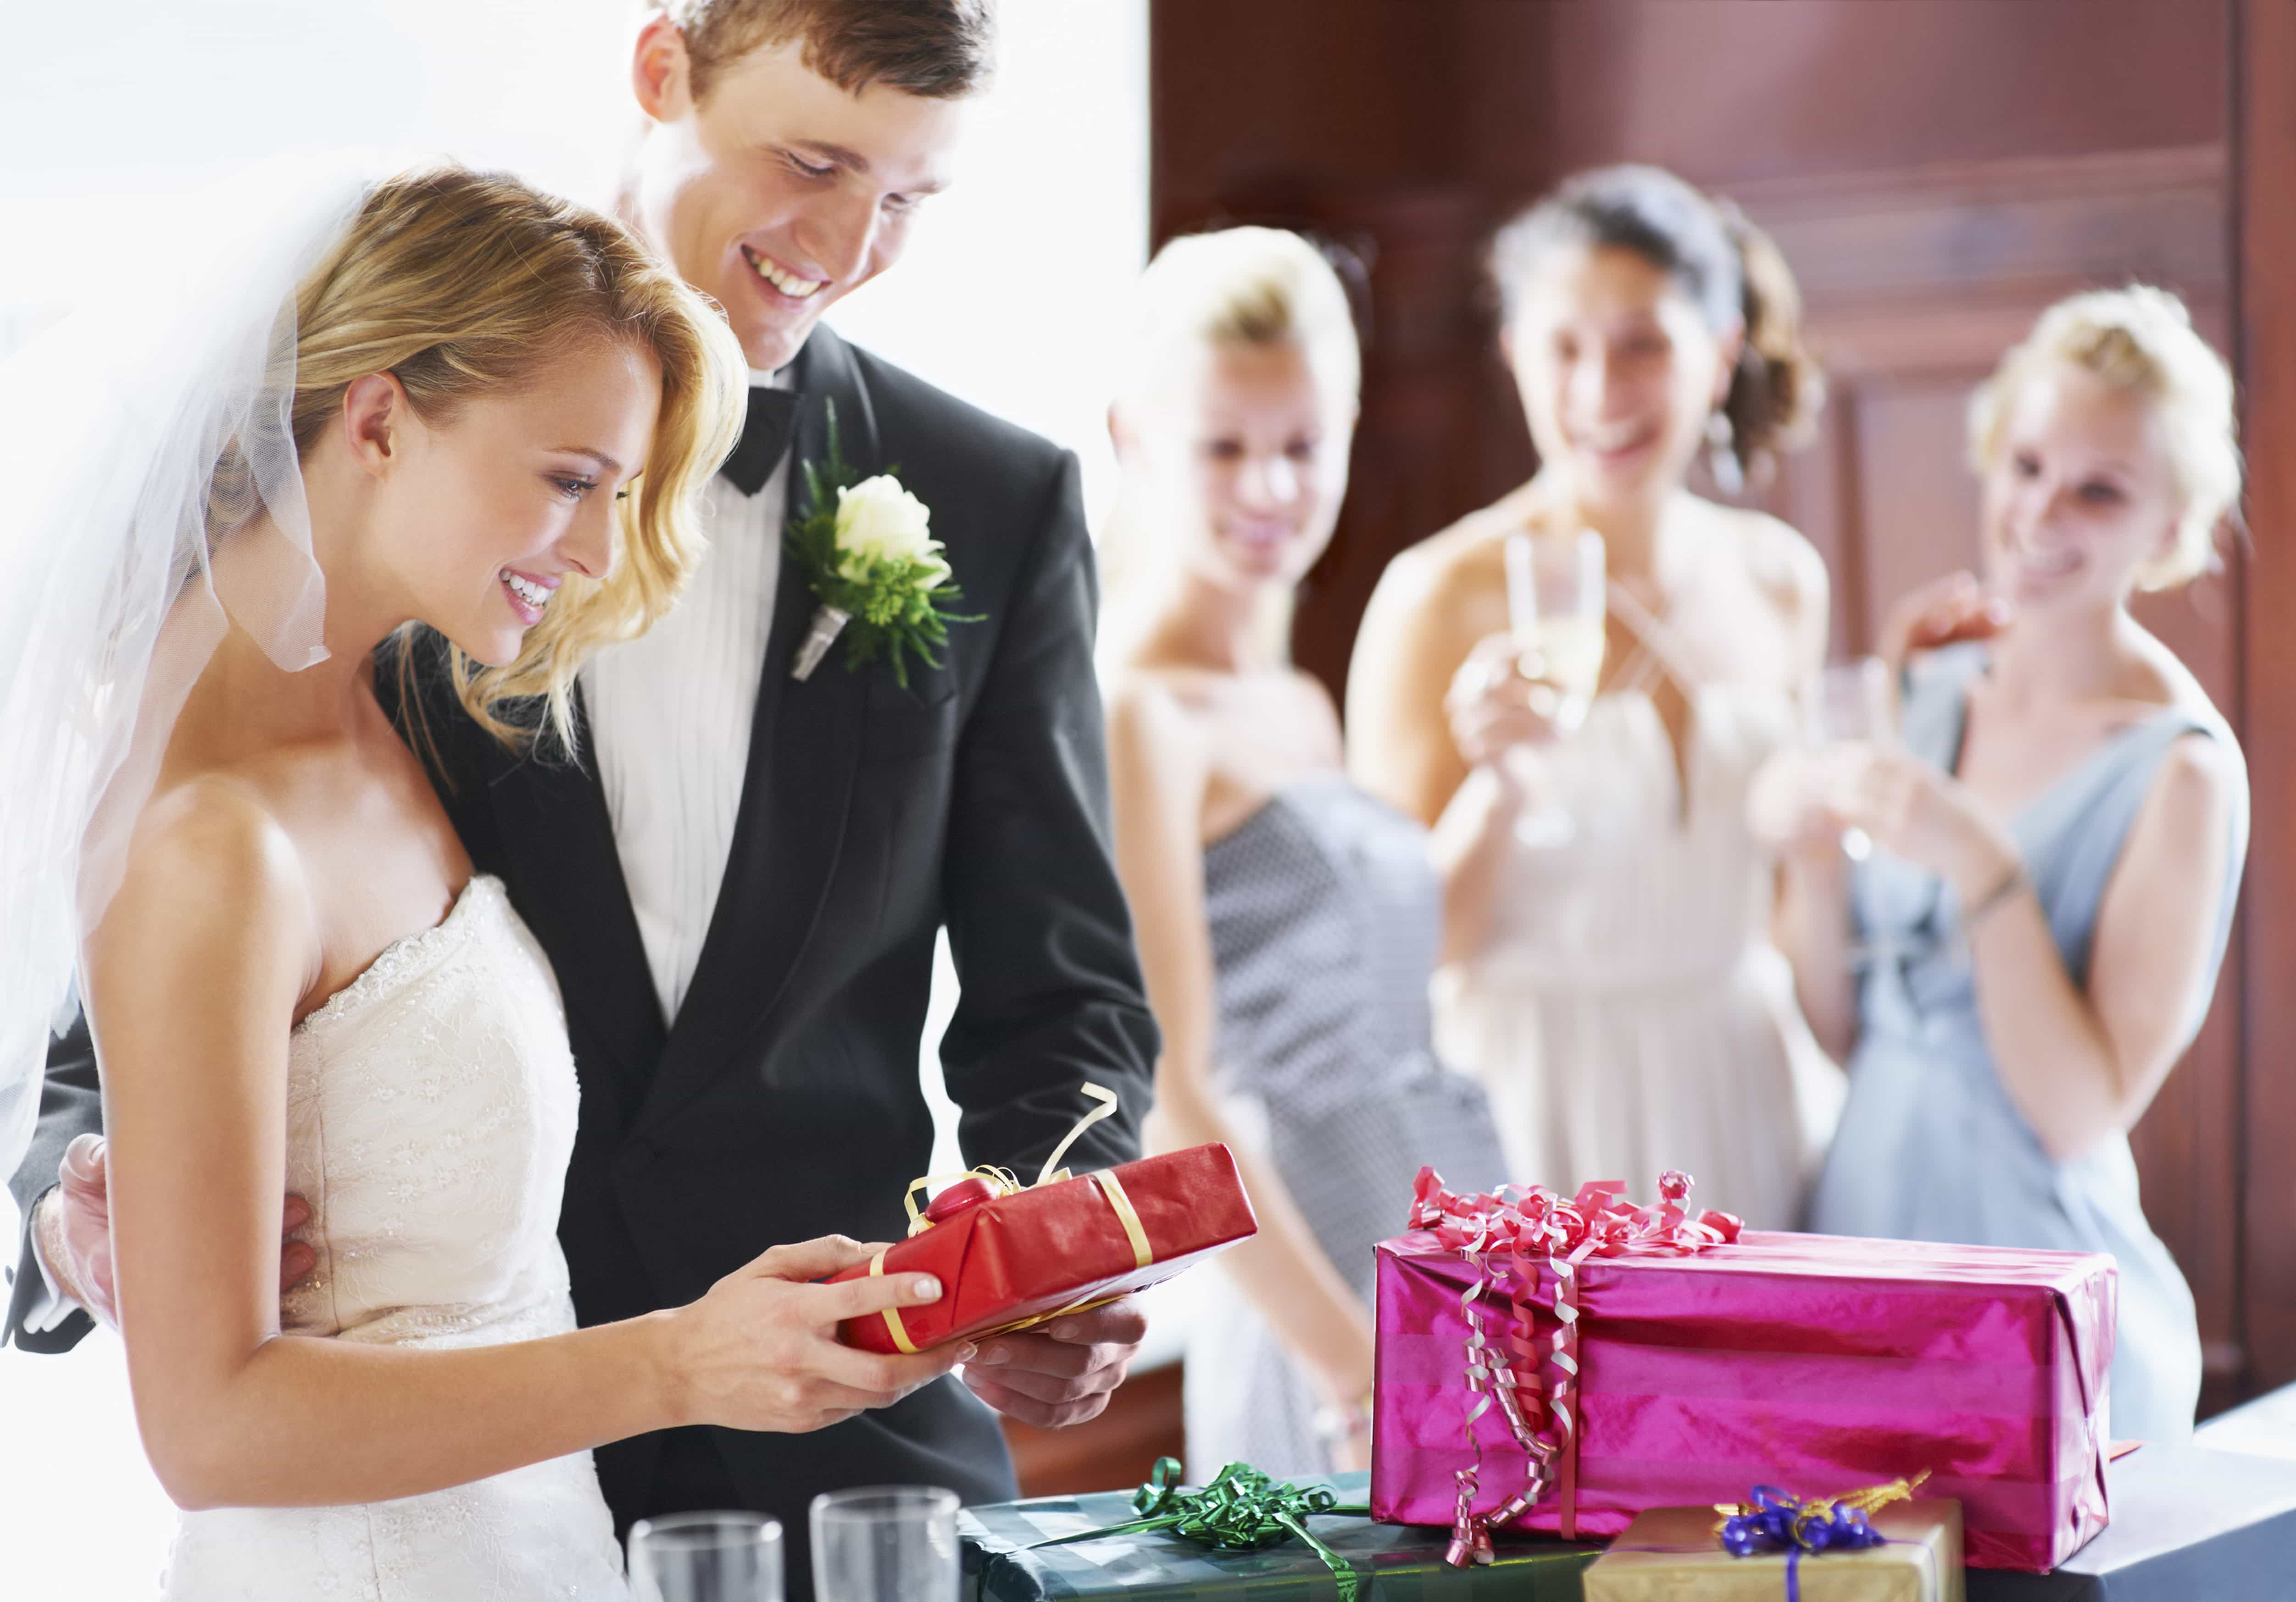 Couple with registry gifts